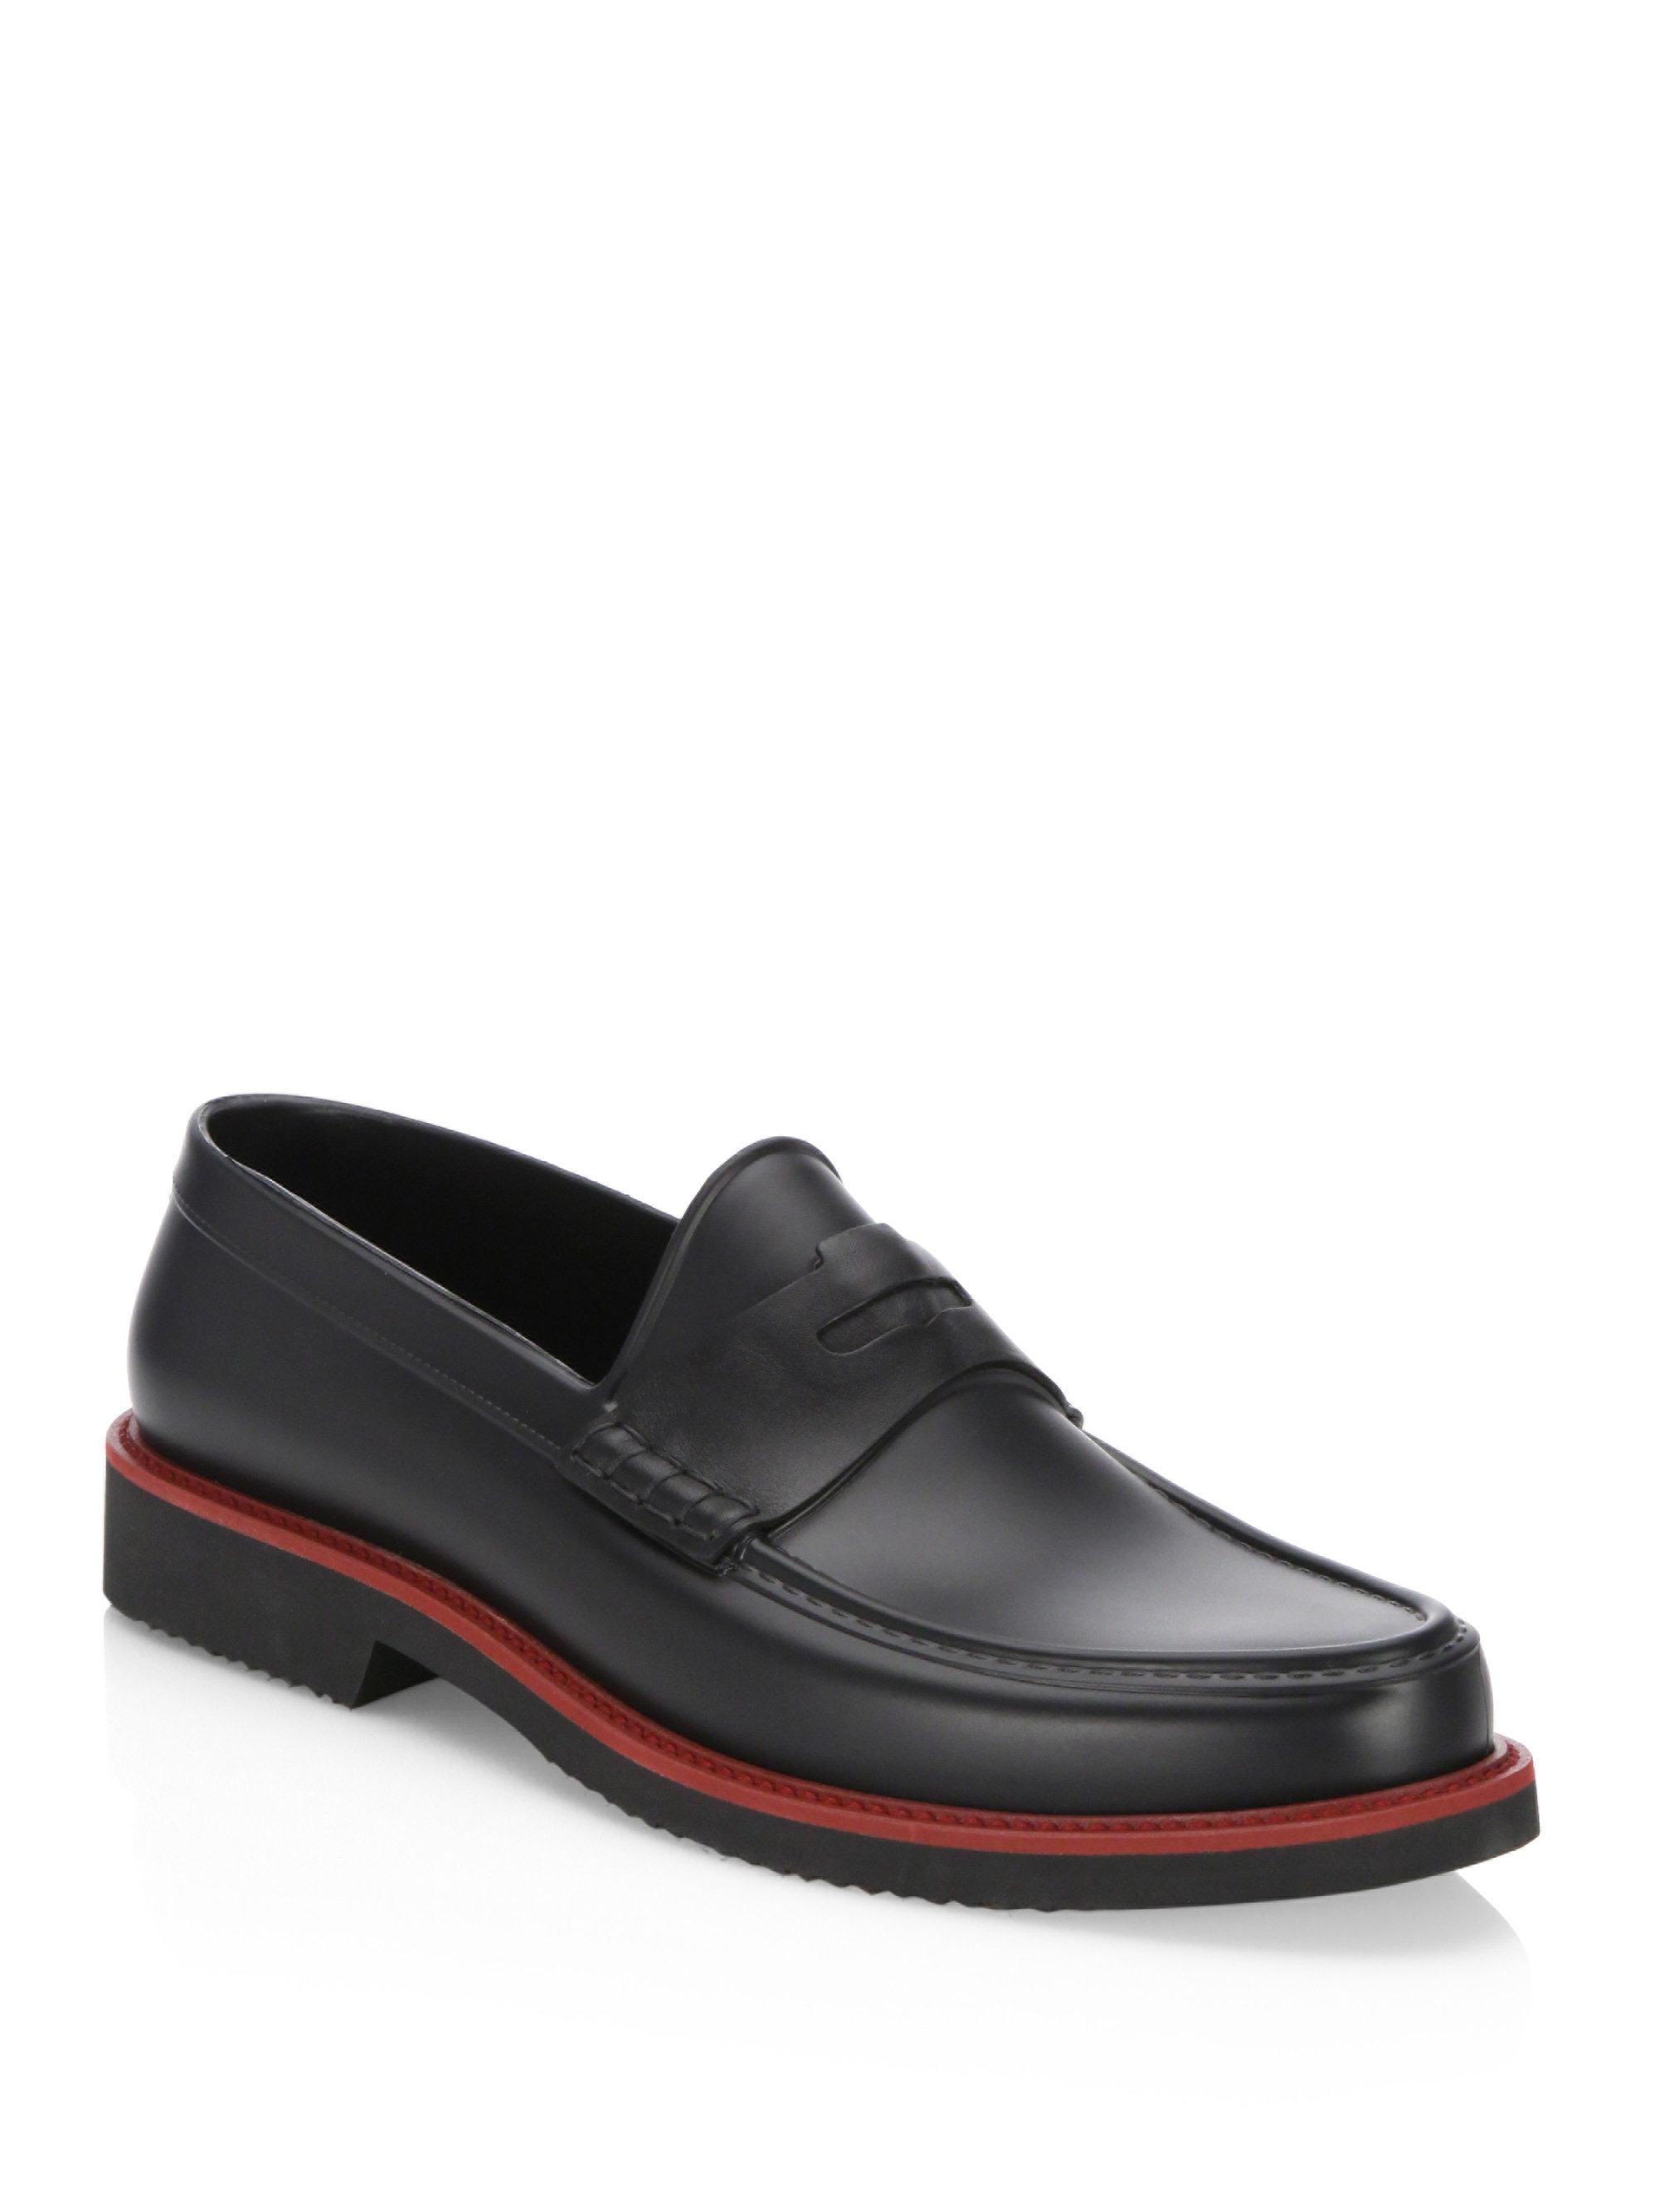 Saks Fifth Avenue COLLECTION Moc Rubber Penny Loafers 6WhJeFO7